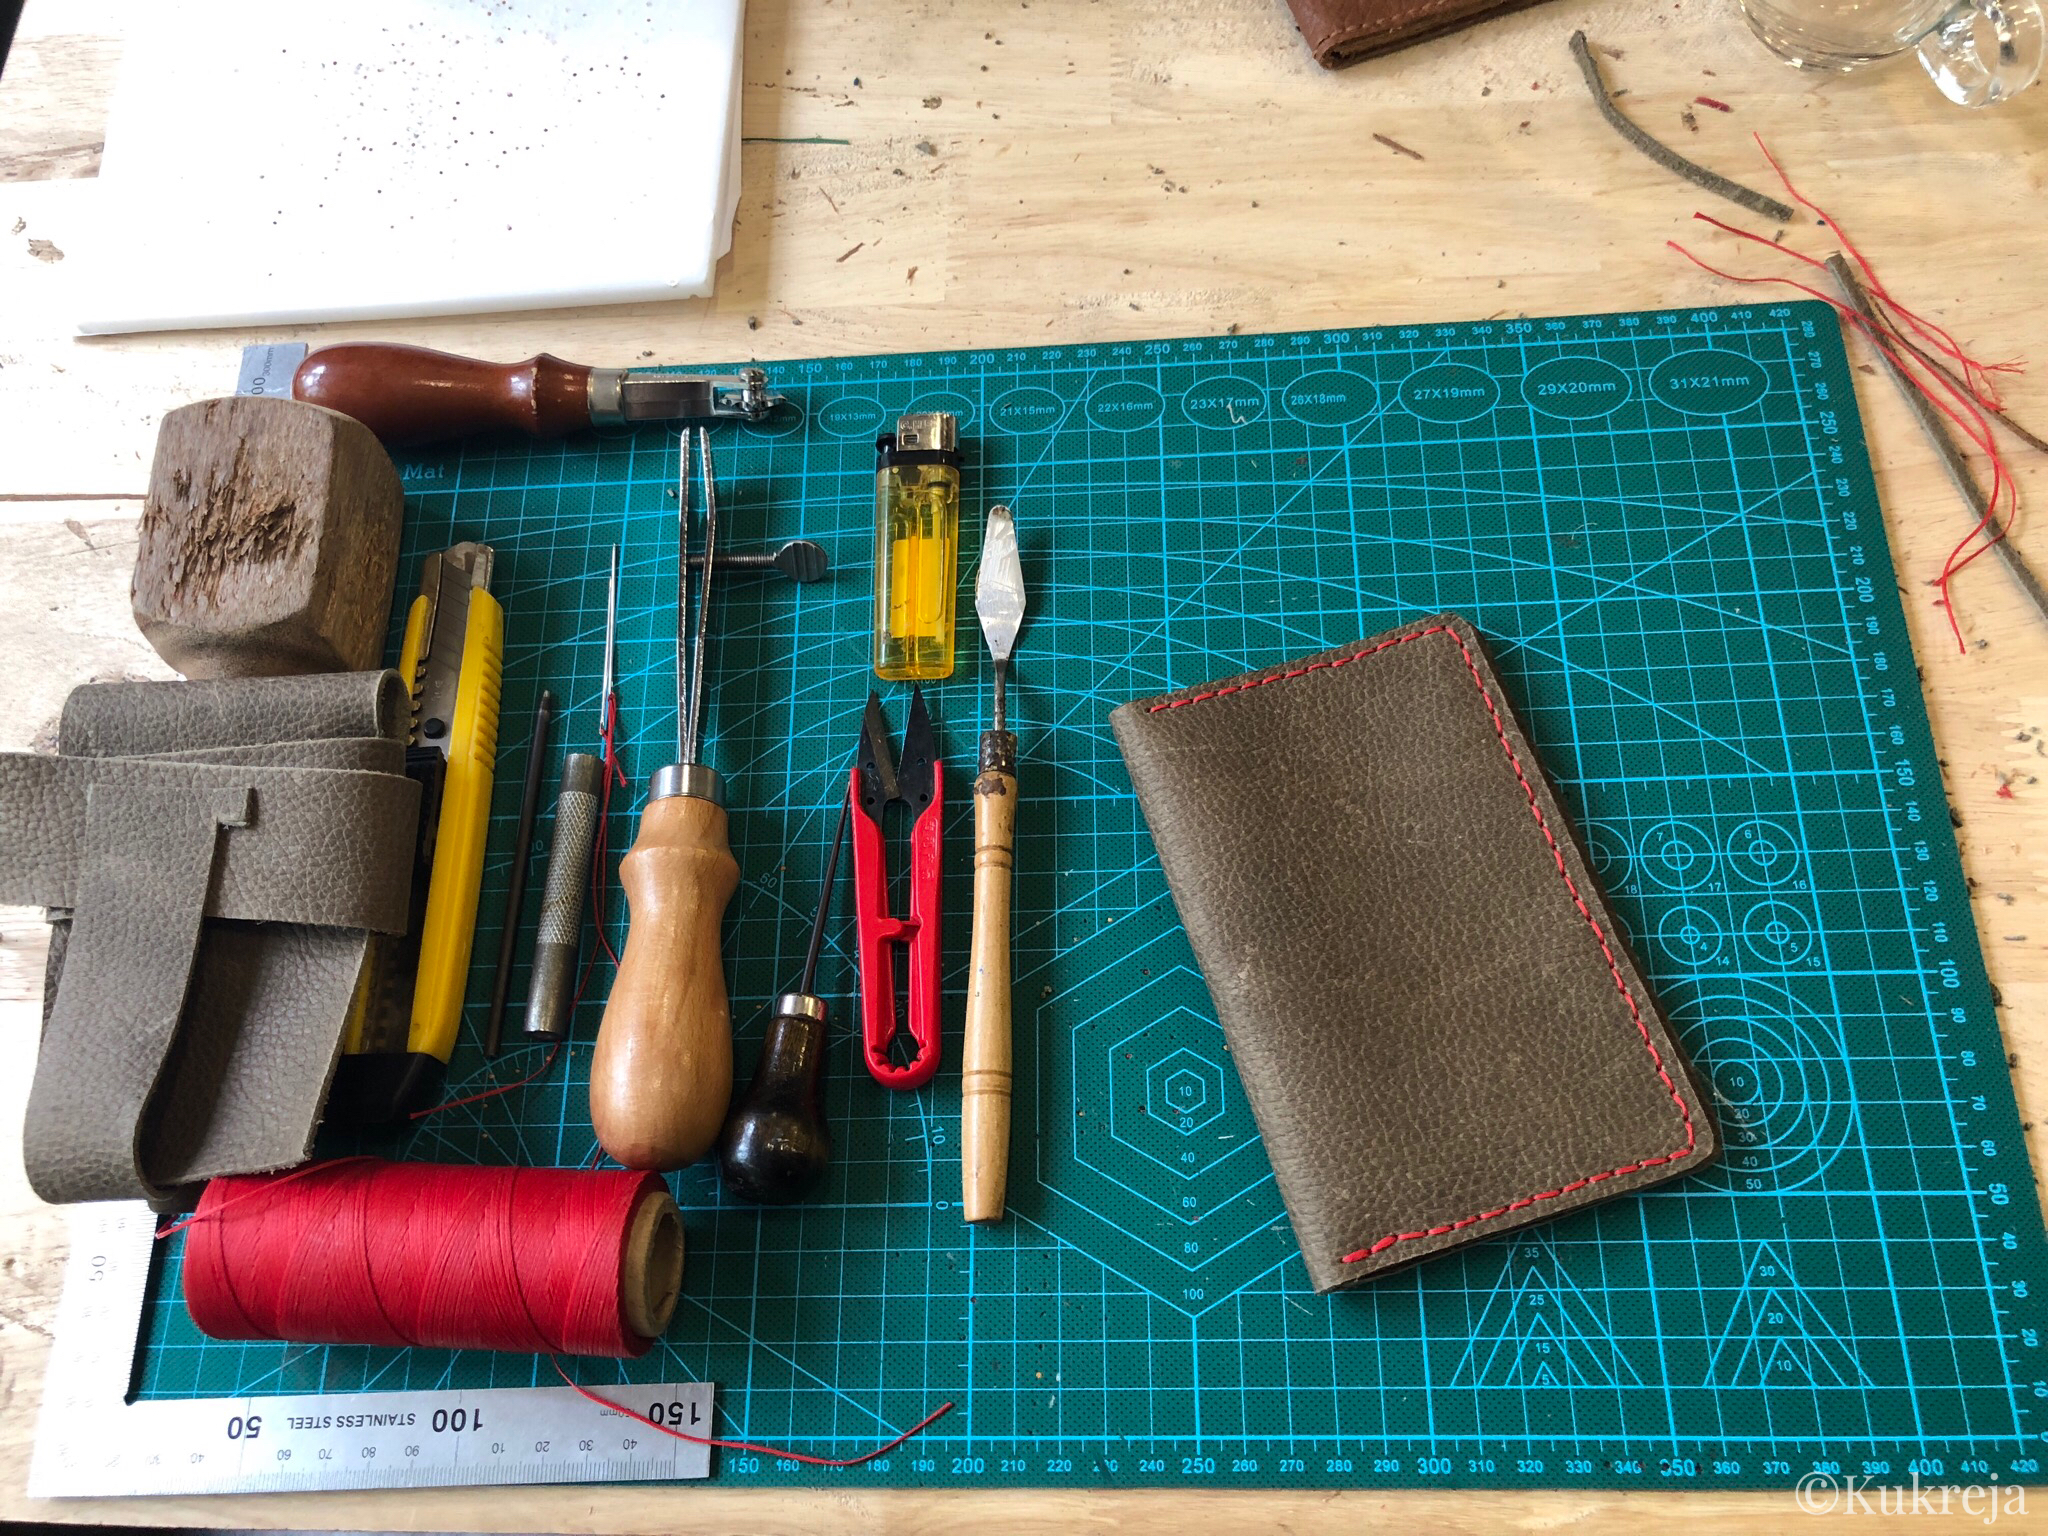 Tools for leather craft displayed on the worktable along with the finished leather passport holder.